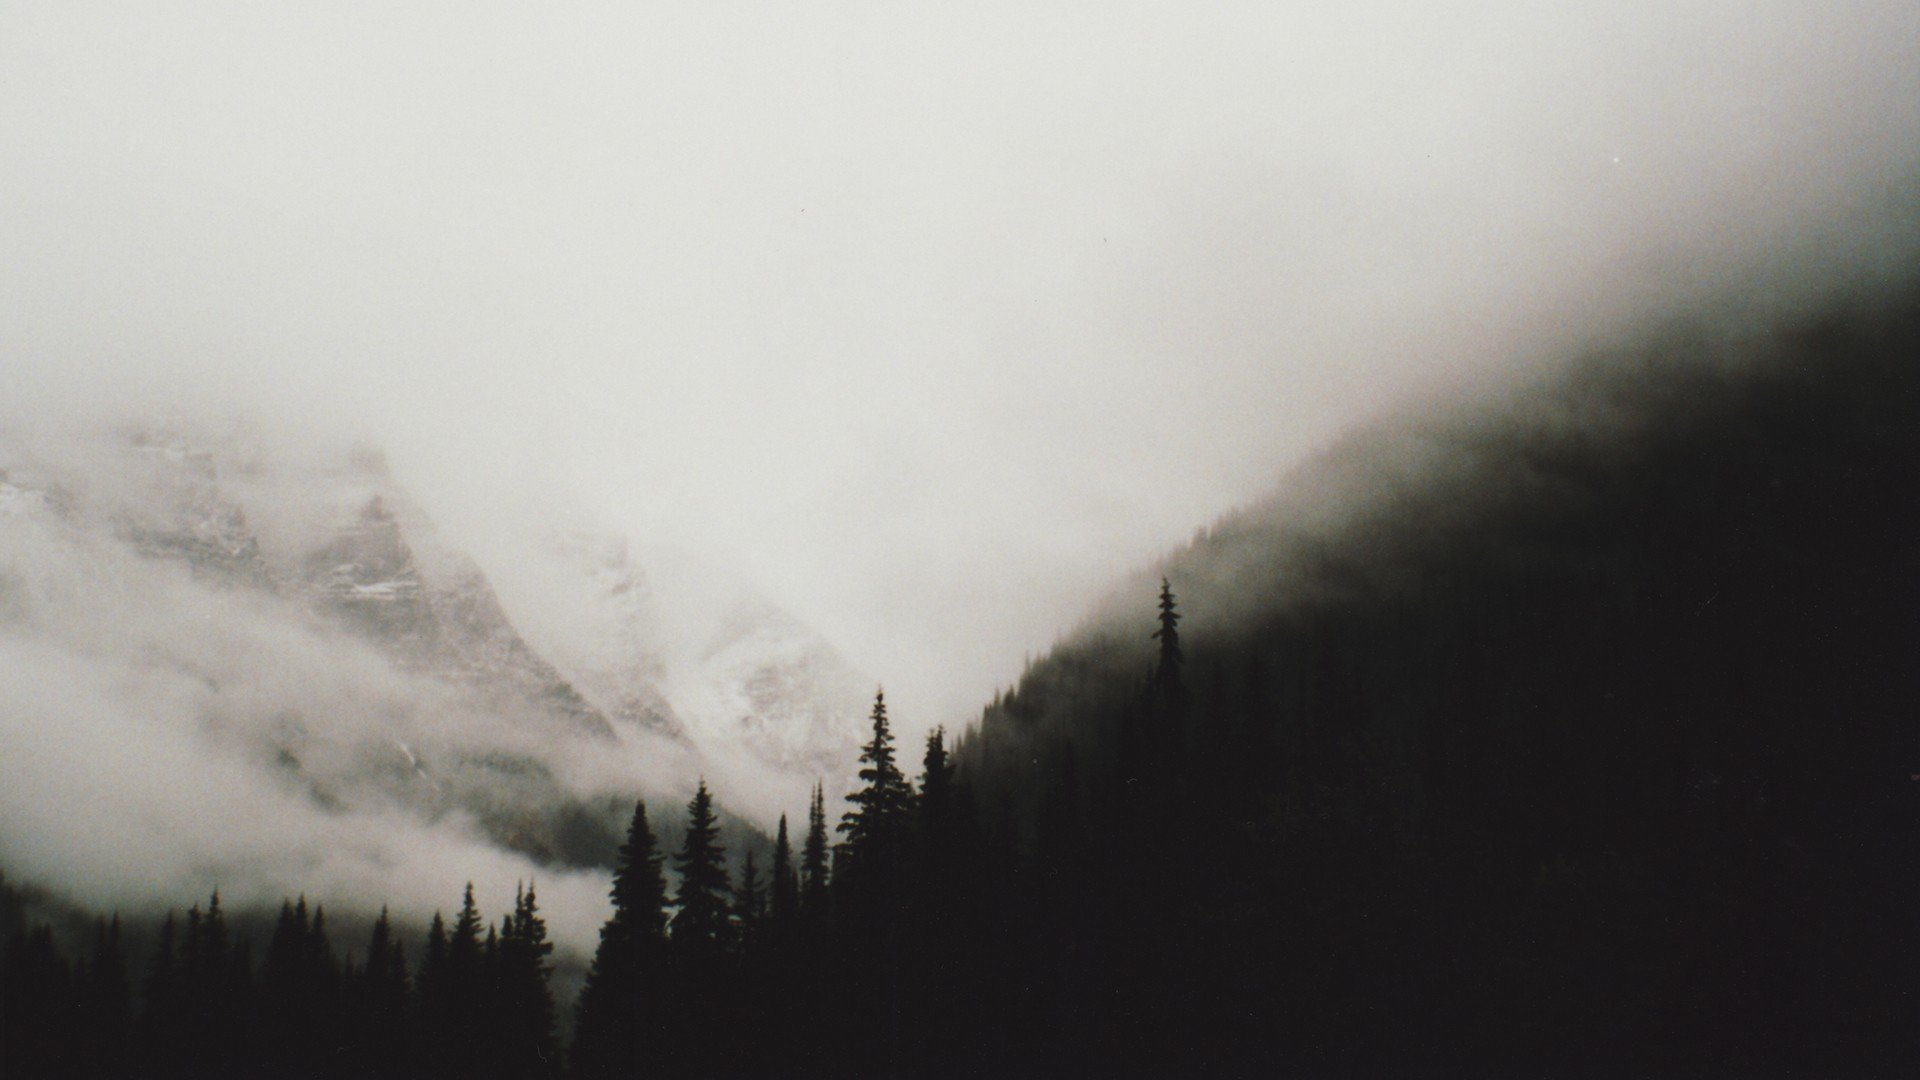 Black and white mountains wallpaper forests trees foggy mountains 1920x1080